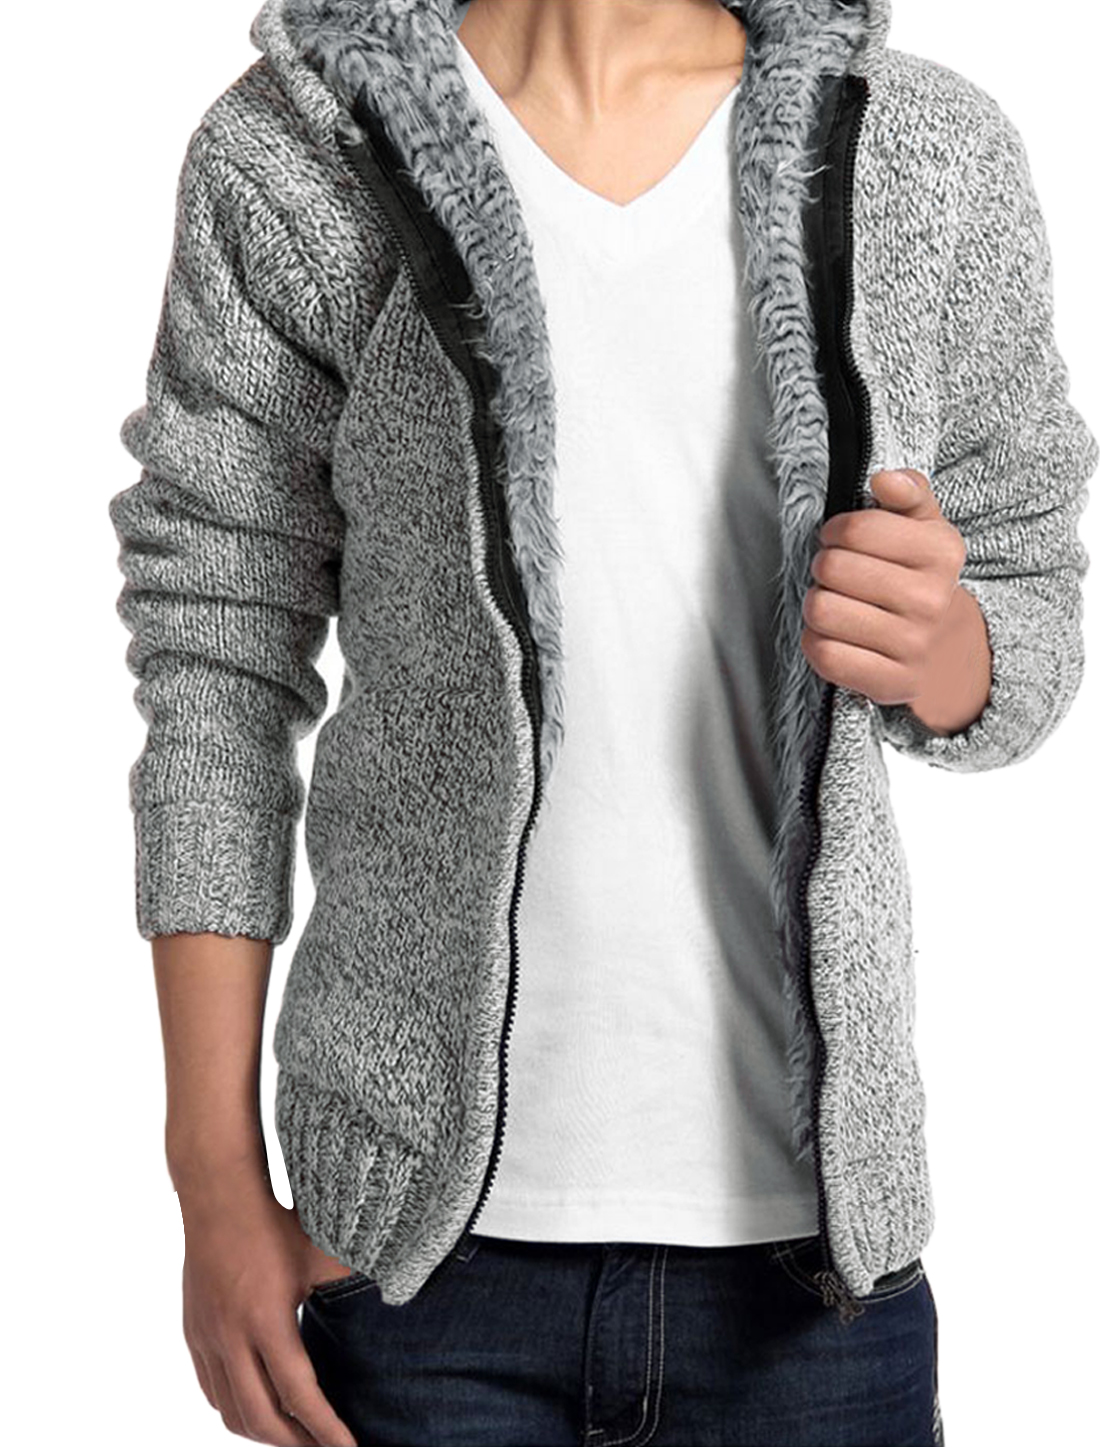 Men Zip Up Heavyweight Sherpa Lined Knit Cardigan Sweater Hoodie Light Gray M